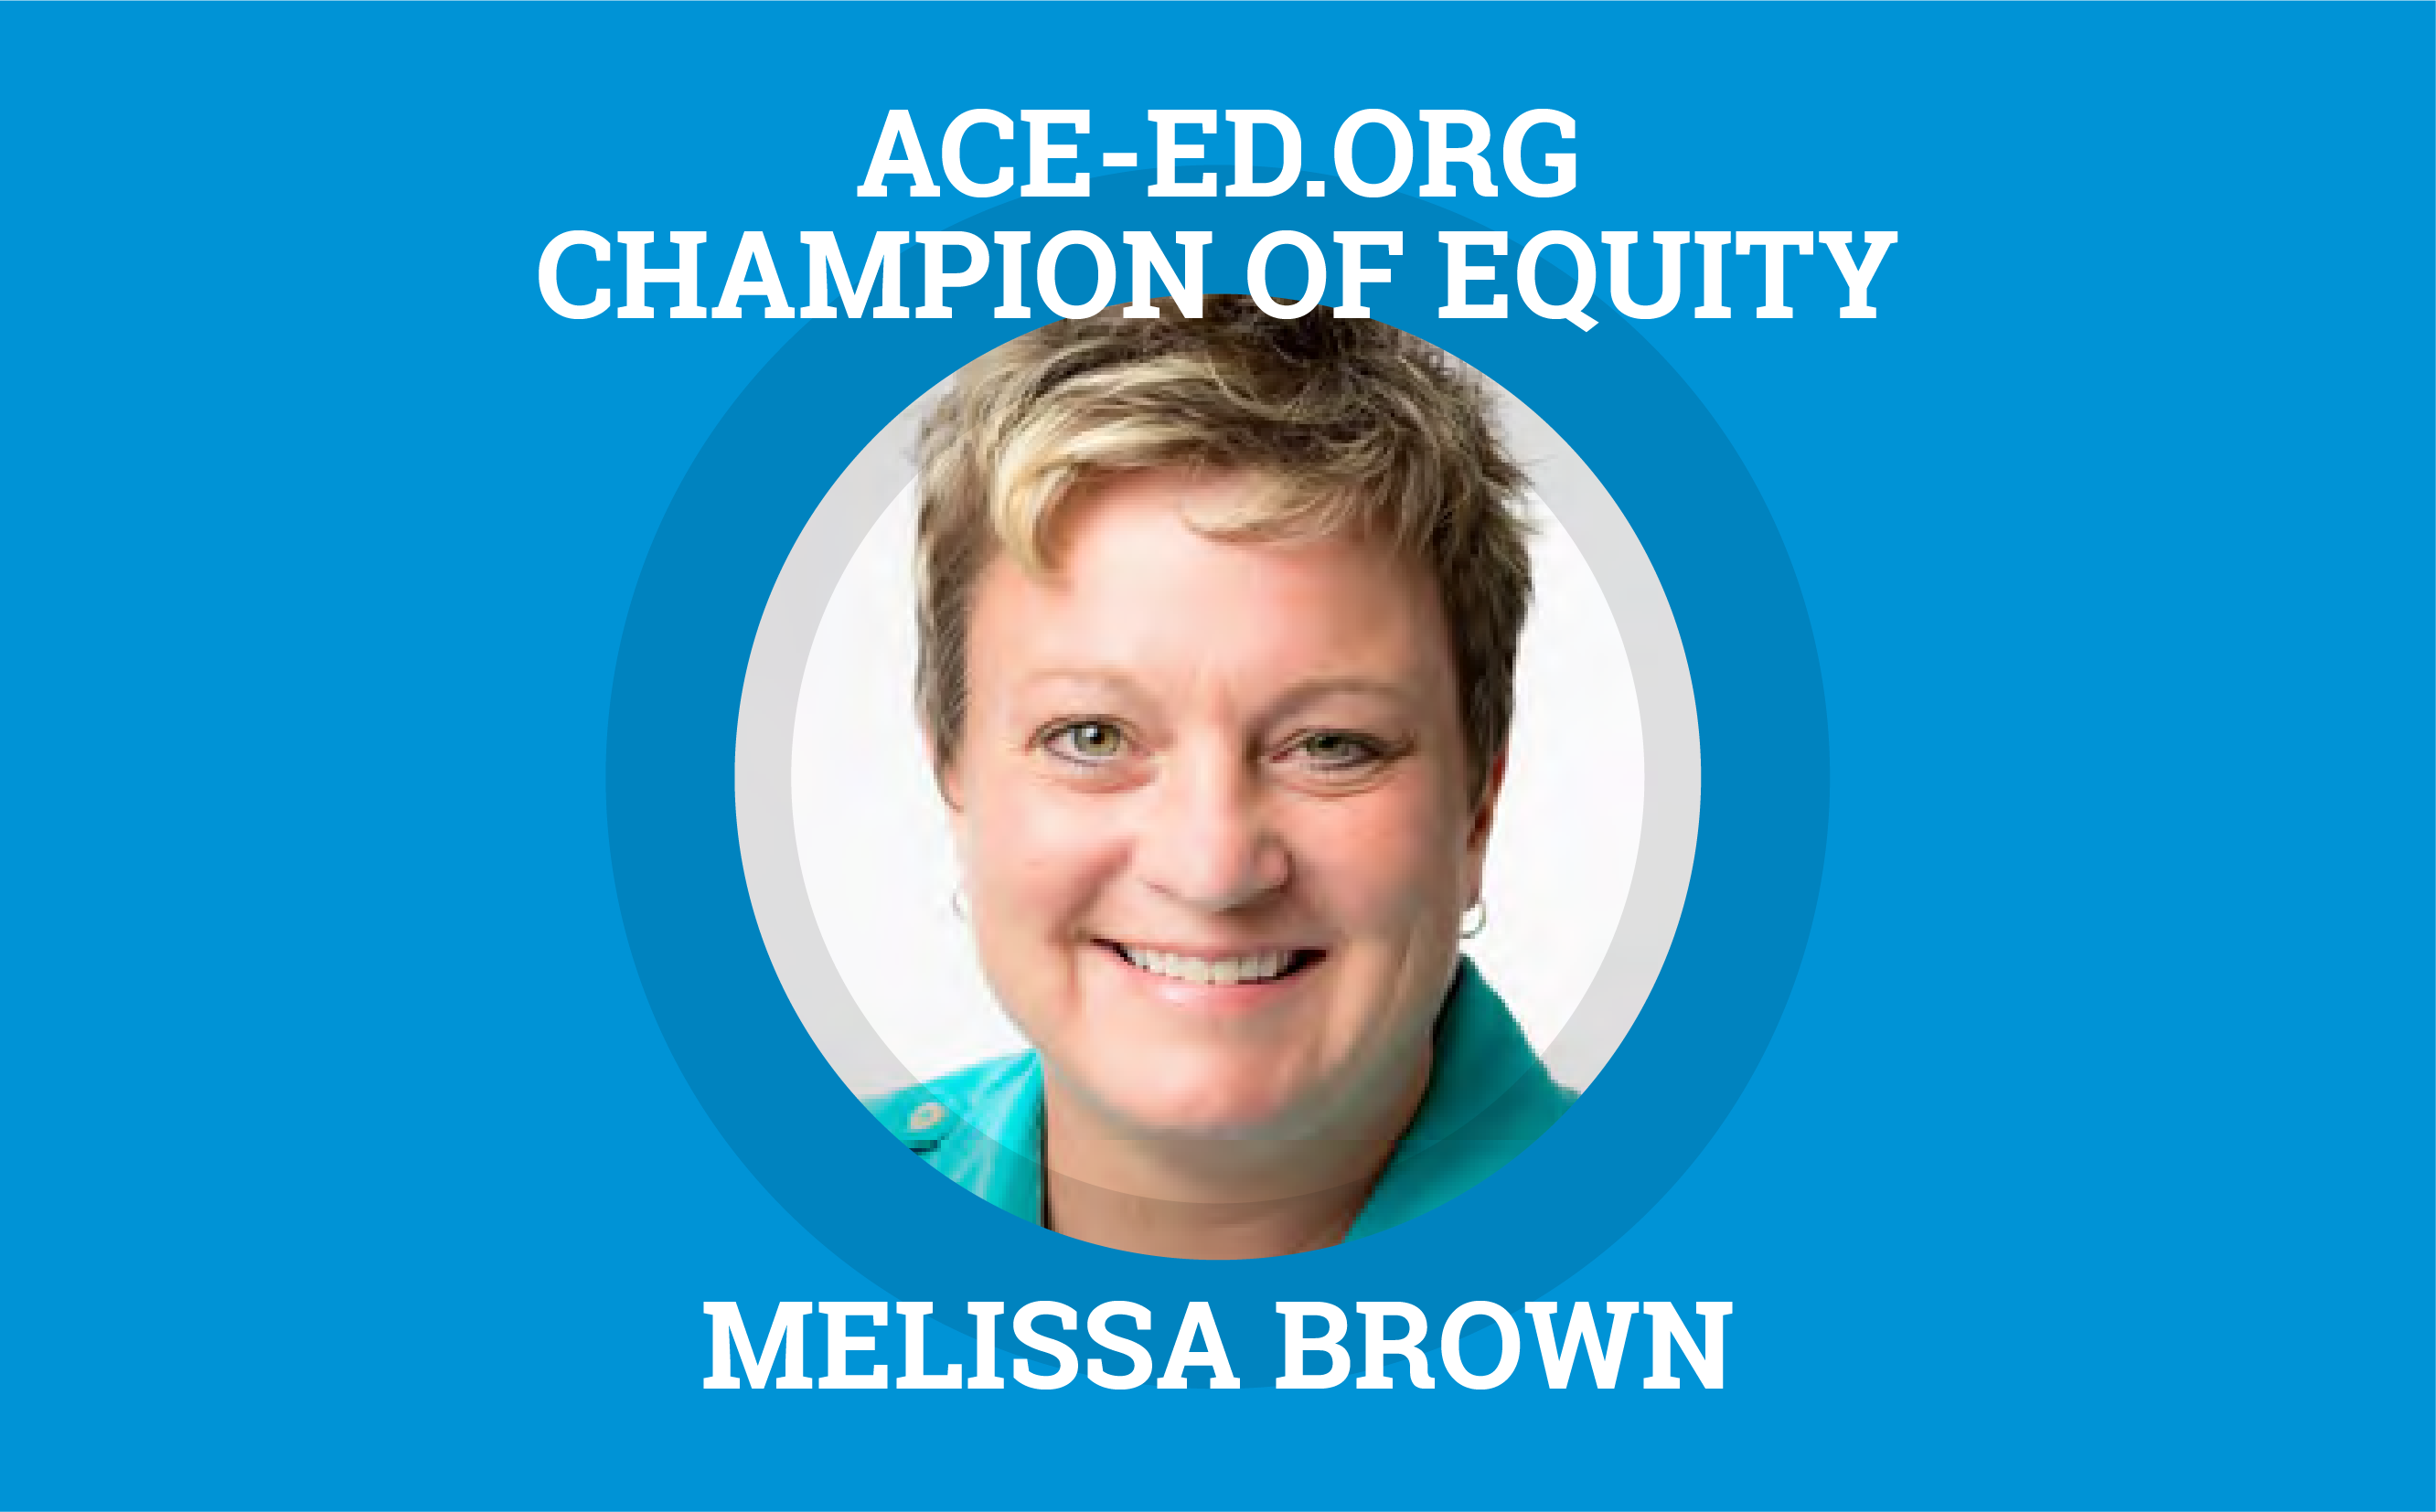 Melissa Brown, Champion of Equity